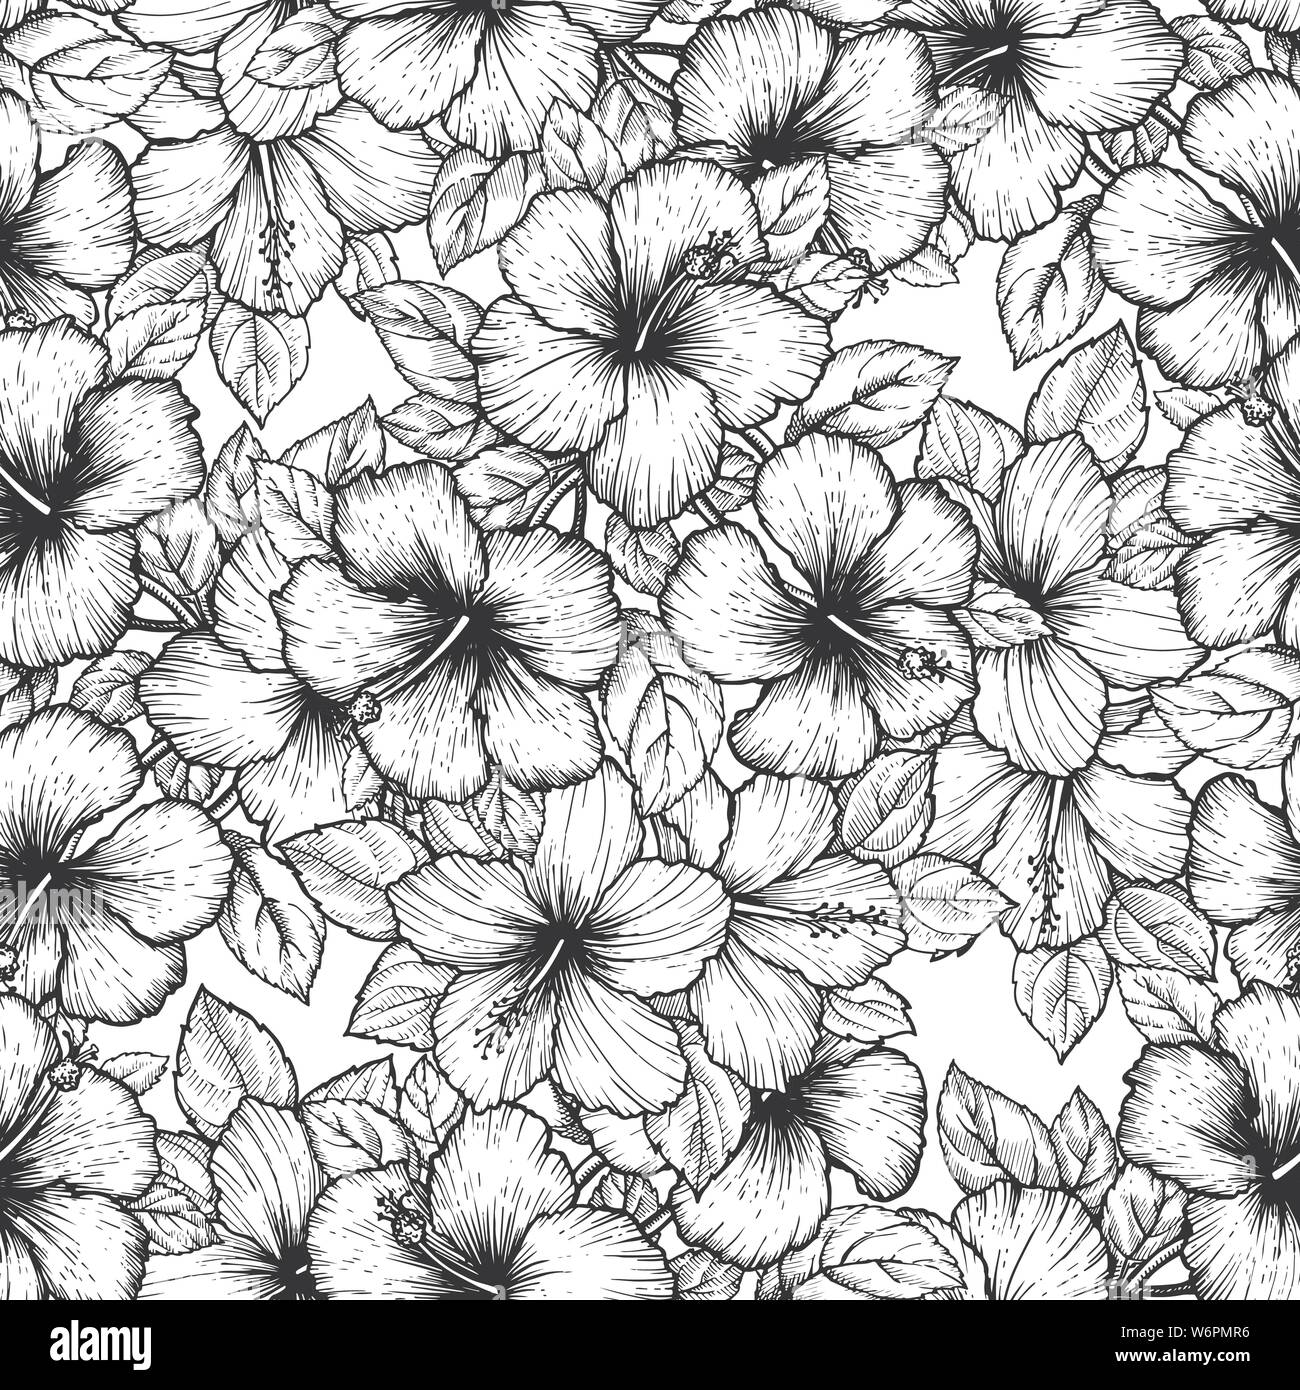 Hand Drawn Tropical Hibiscus Flower Seamless Floral Pattern With